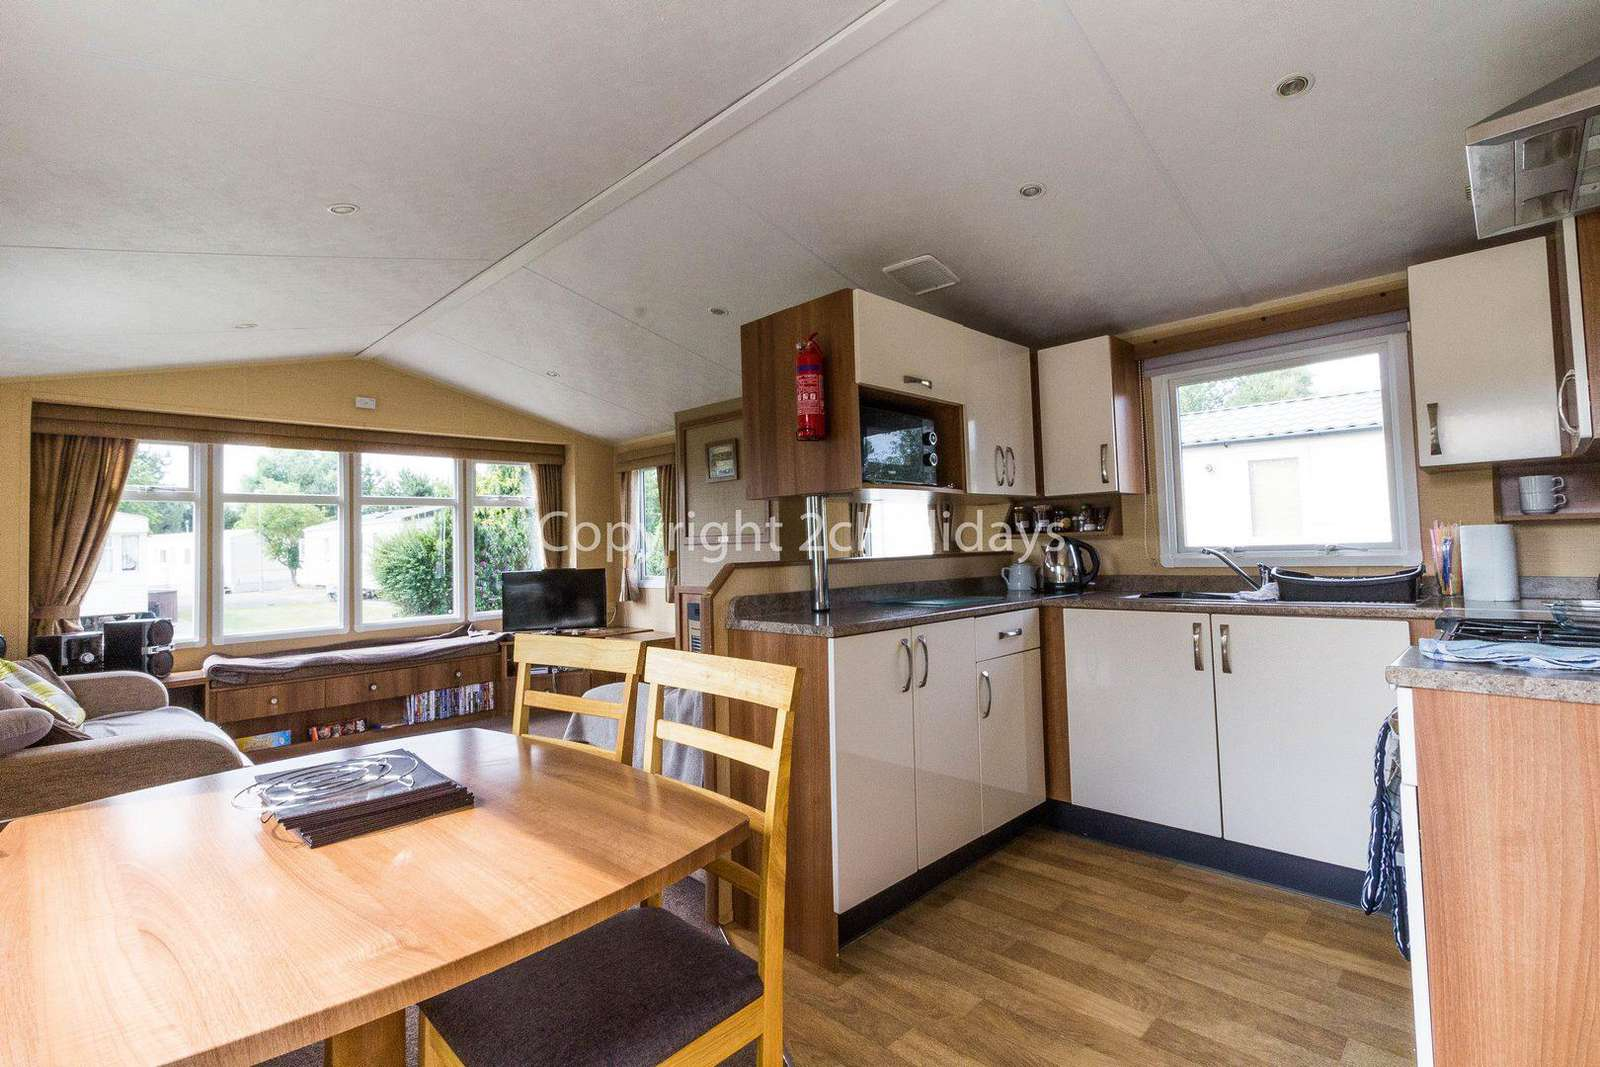 Southview Holiday Park in Lincolnshire